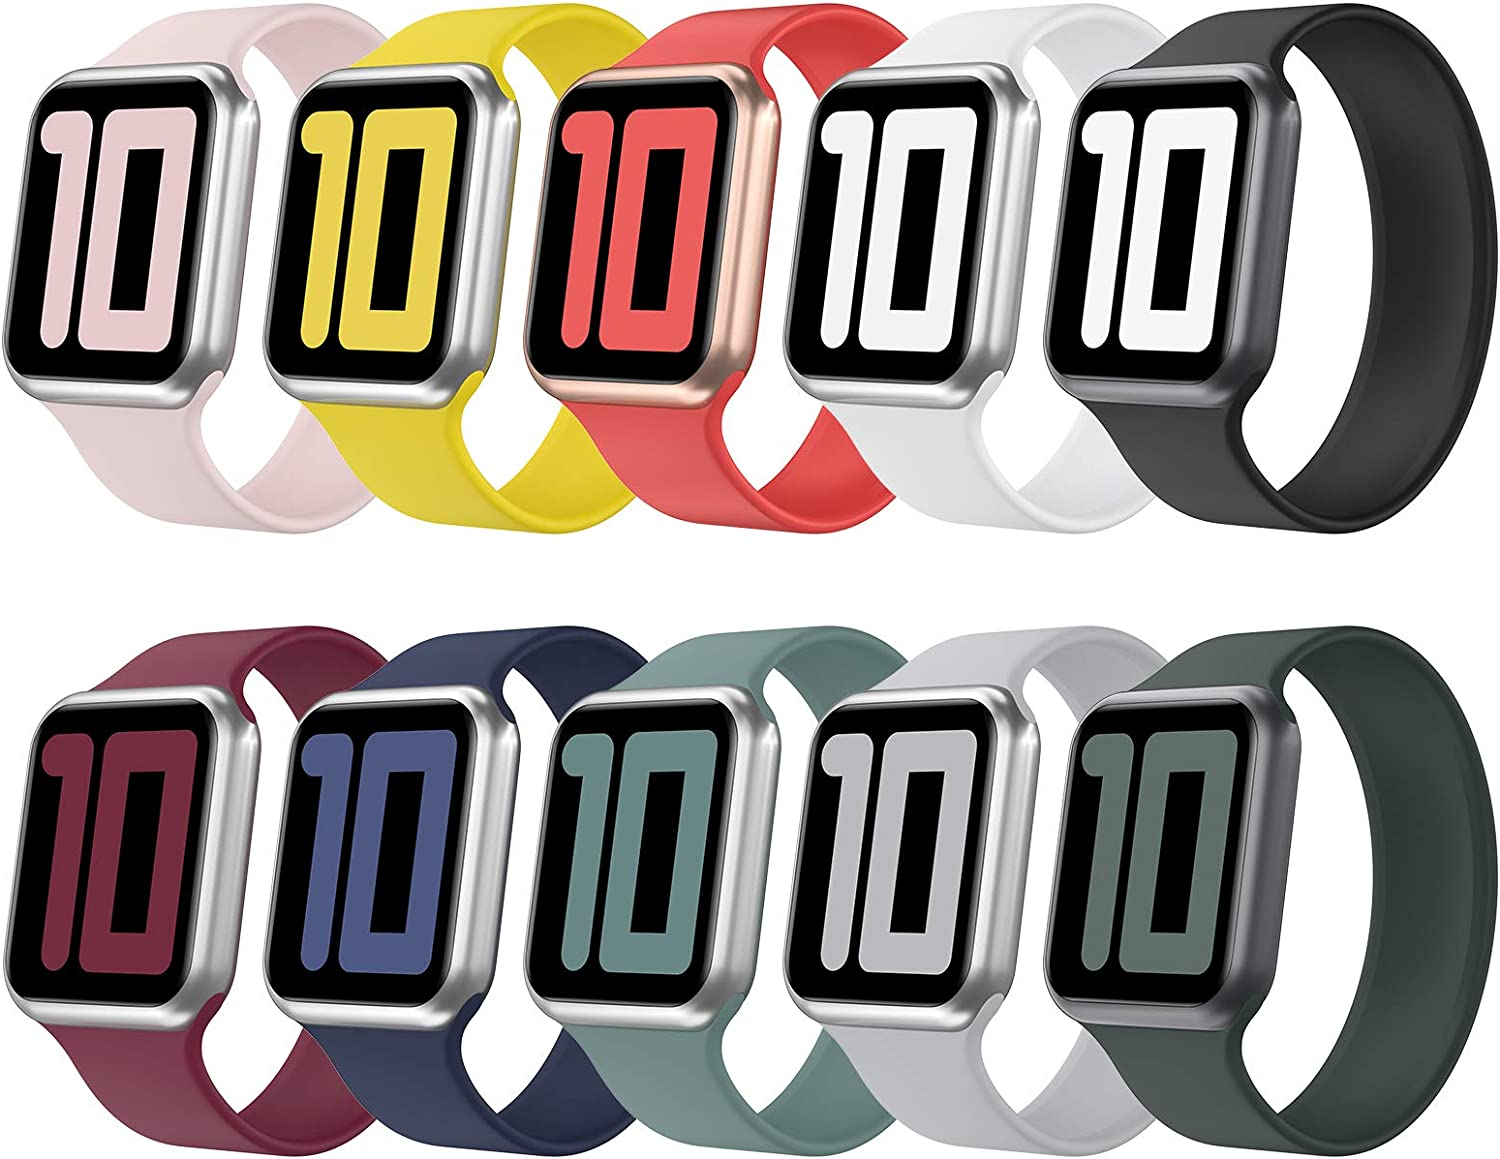 Huishang 10 Pack Solo Loop Strap Compatible with Apple Watch Band 38mm 42mm 40mm 44mm, Silicone Watch Bands, Sport Replacement Wristband for iWatch Series 6/5/4/3/2/1, SE (10 Pack, 38mm/40mm-M)